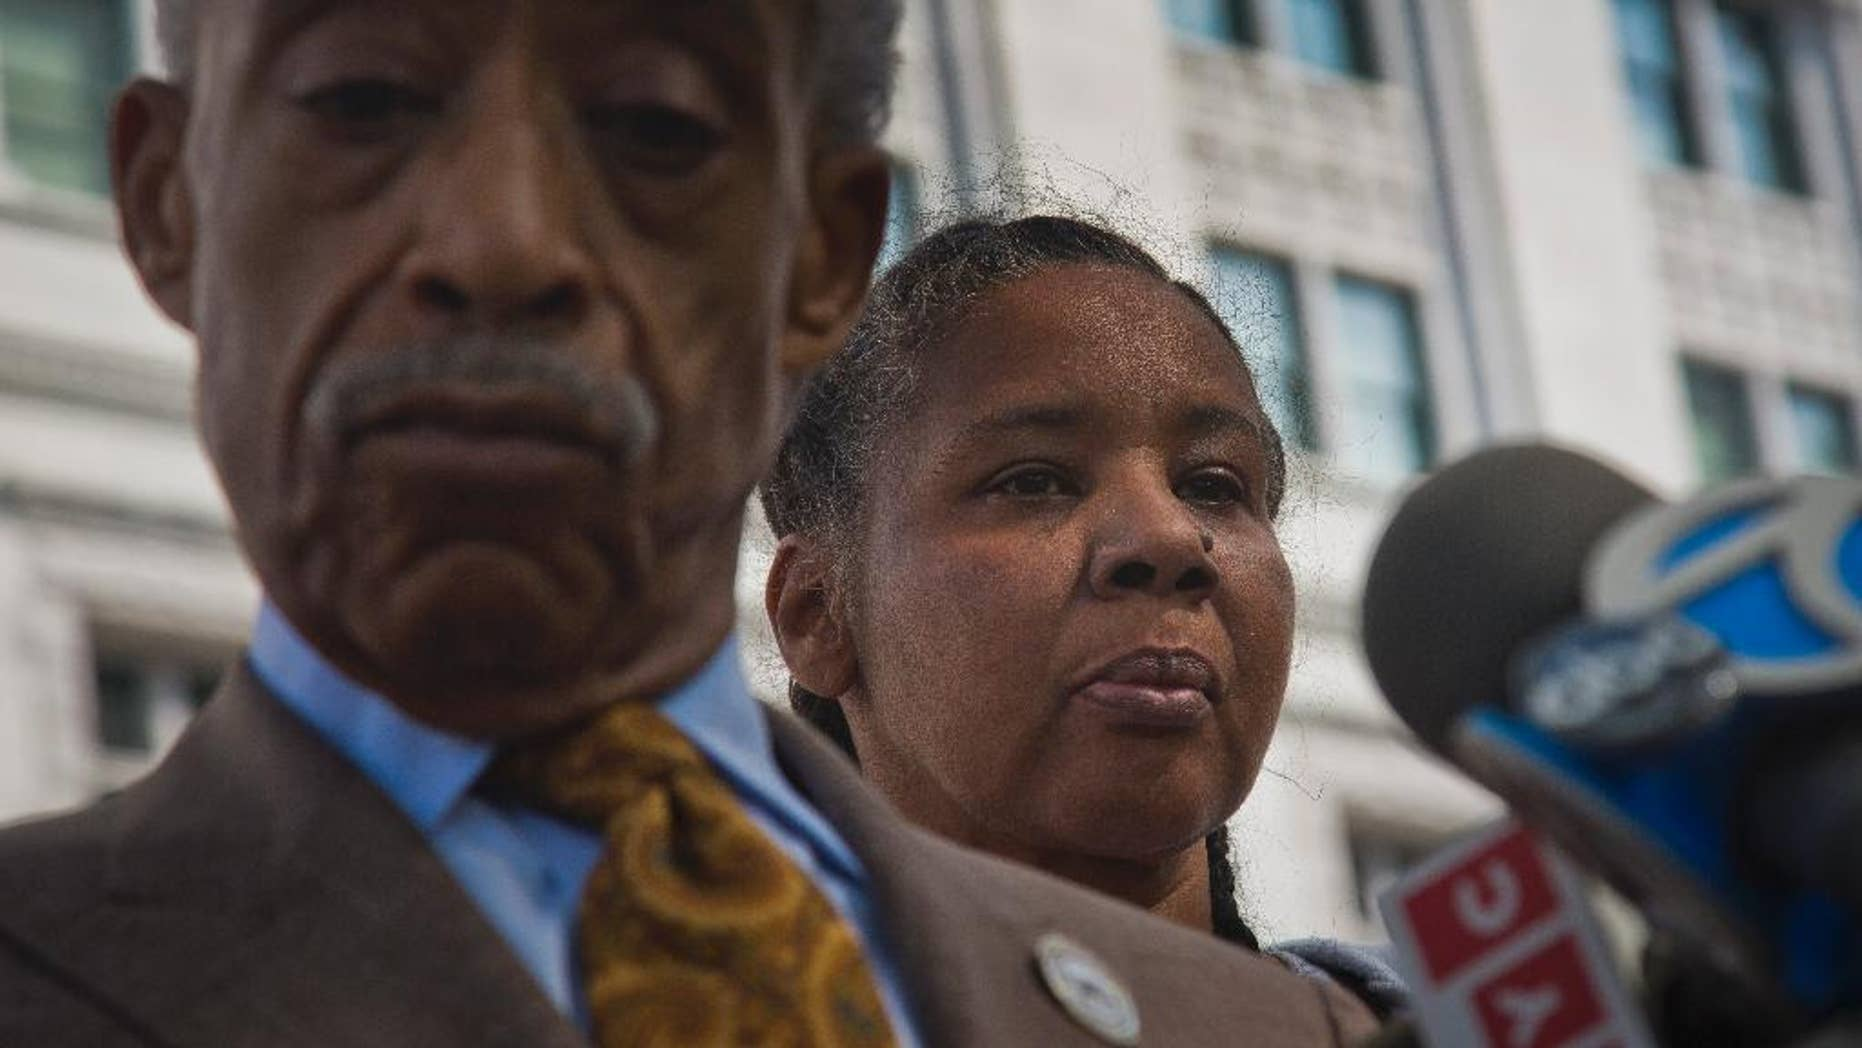 Rev. Al Sharpton, left, and Esaw Garner, the wife of fatal police chokehold victim Eric Garner, listen during a press briefing after  meeting privately with U.S. Attorney Loretta Lynch on Thursday Aug. 21, 2014 in New York.  The family of the unarmed Eric Garner, whose death last month in police custody was recorded on video, has asked federal prosecutors to investigate the case.(AP Photo/Bebeto Matthews)